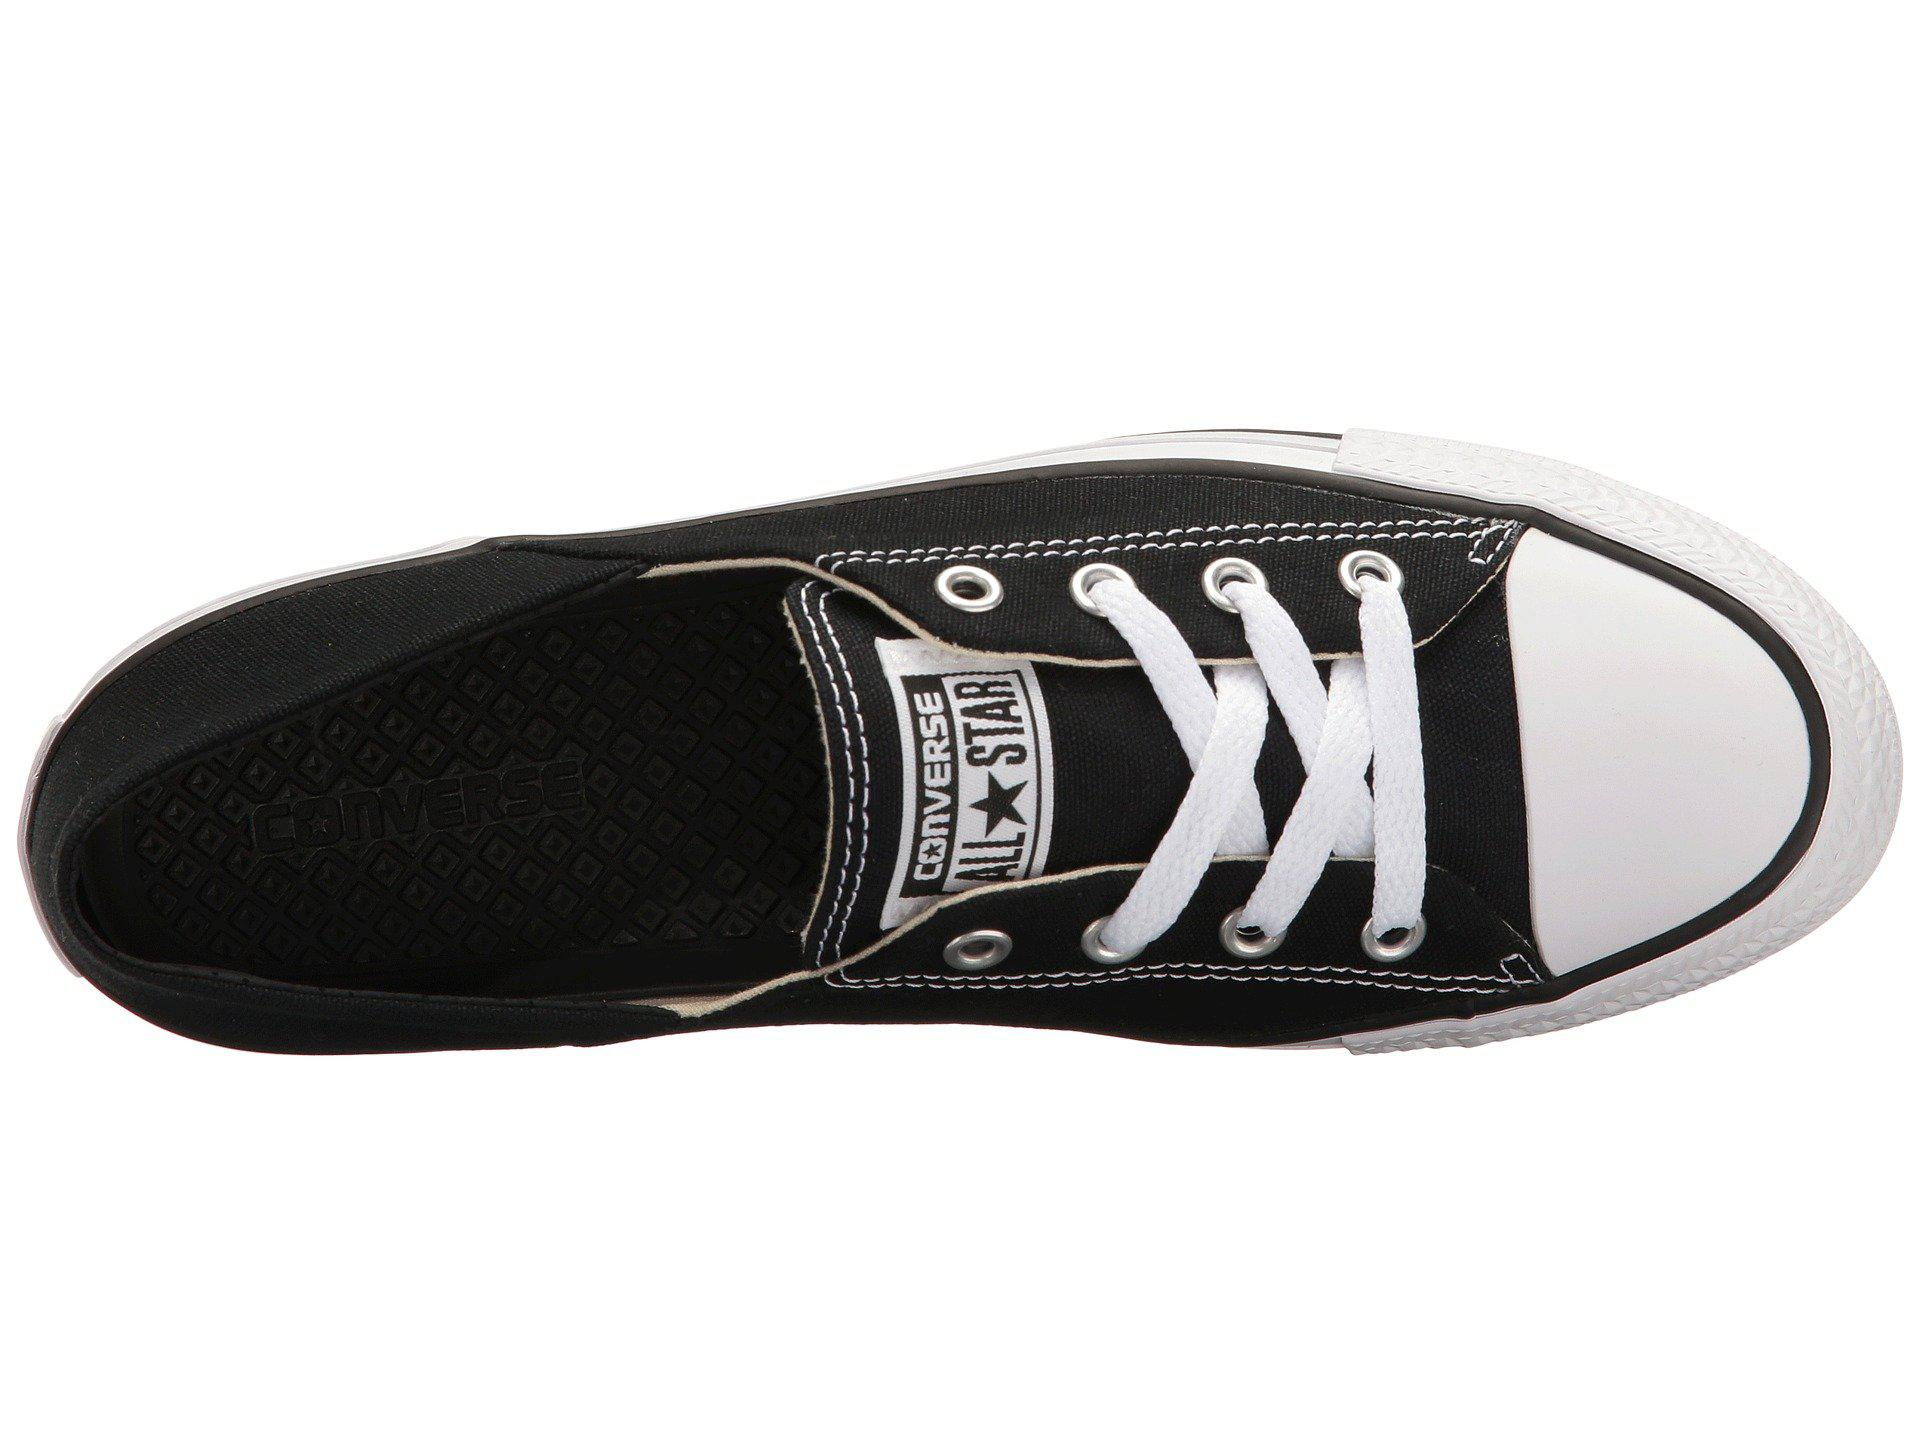 4852d48a4cad59 Men Lyst In Chuck All Ox Converse Coral Black For Taylor® Star® rgvrBw